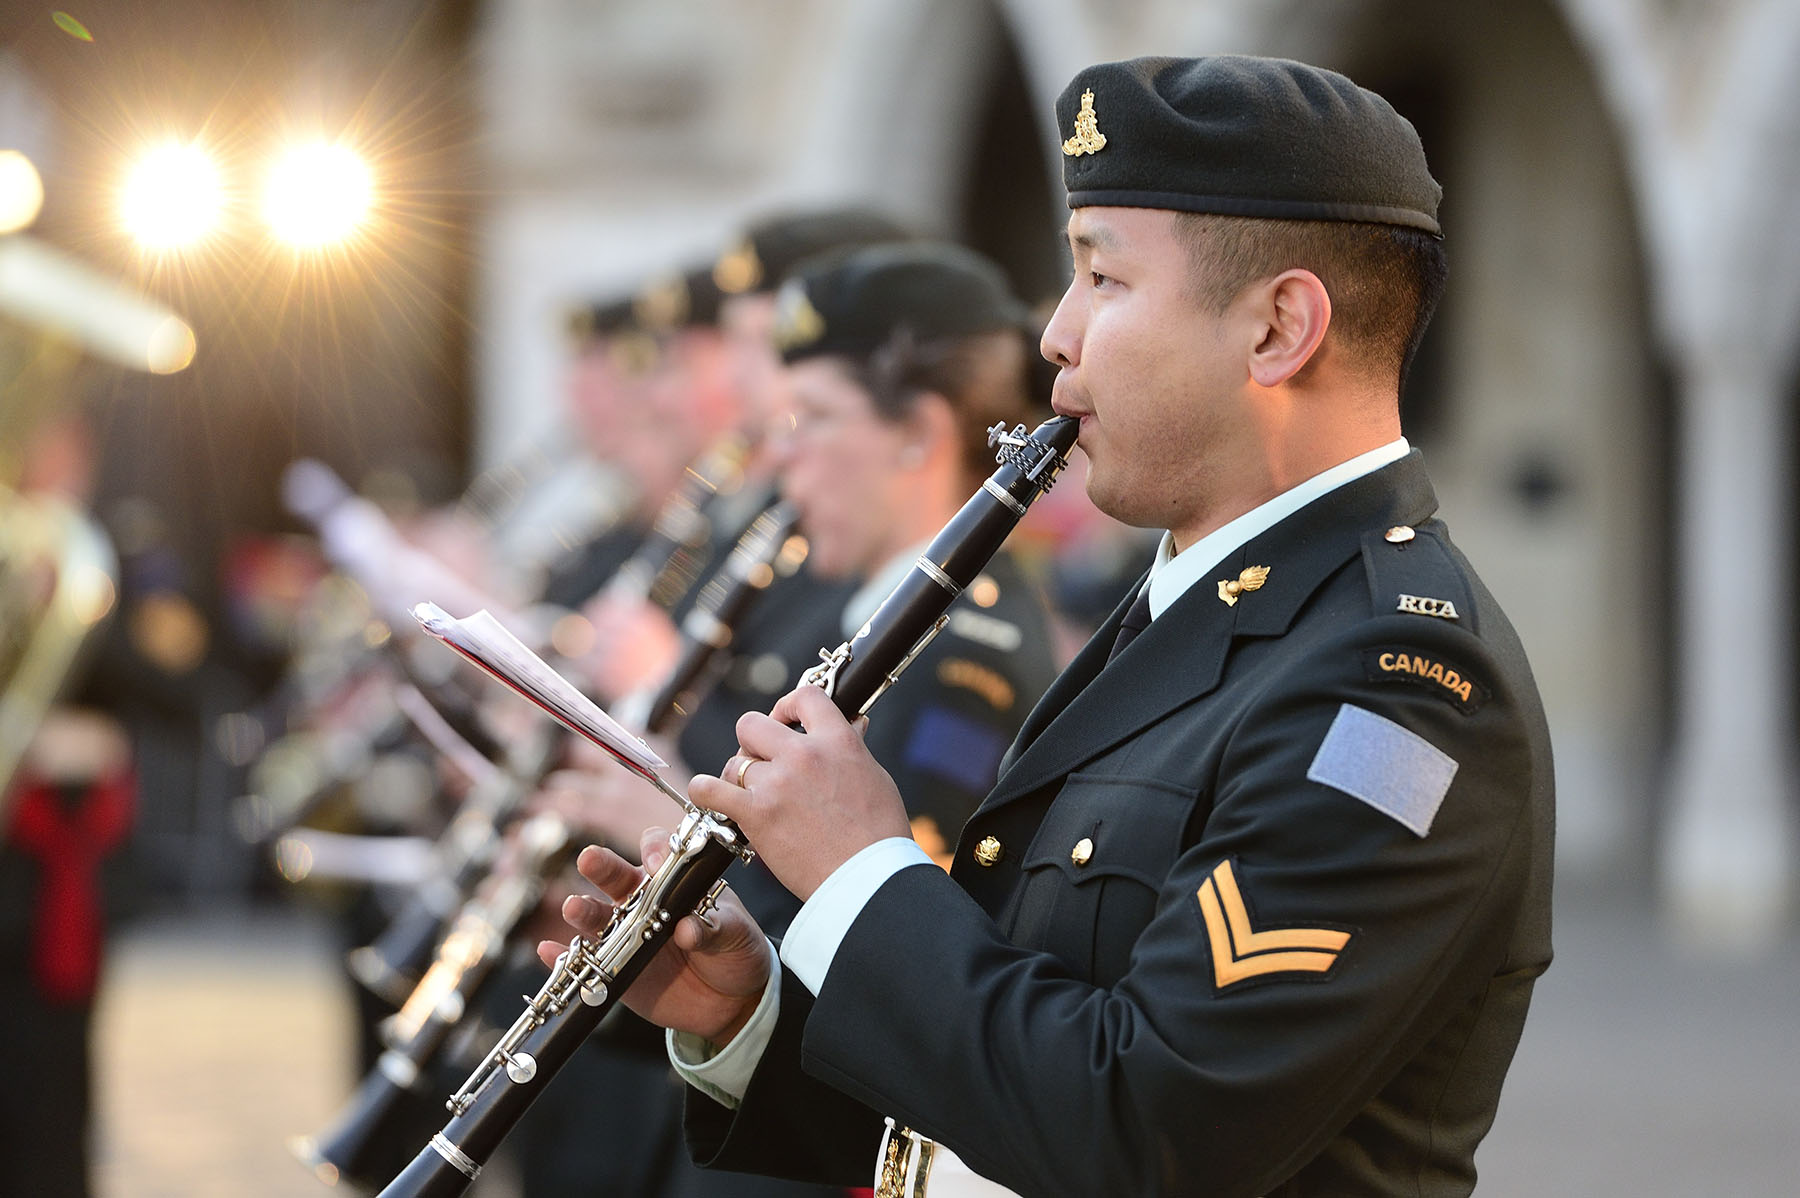 The concert featured the Canadian Armed Forces Band.